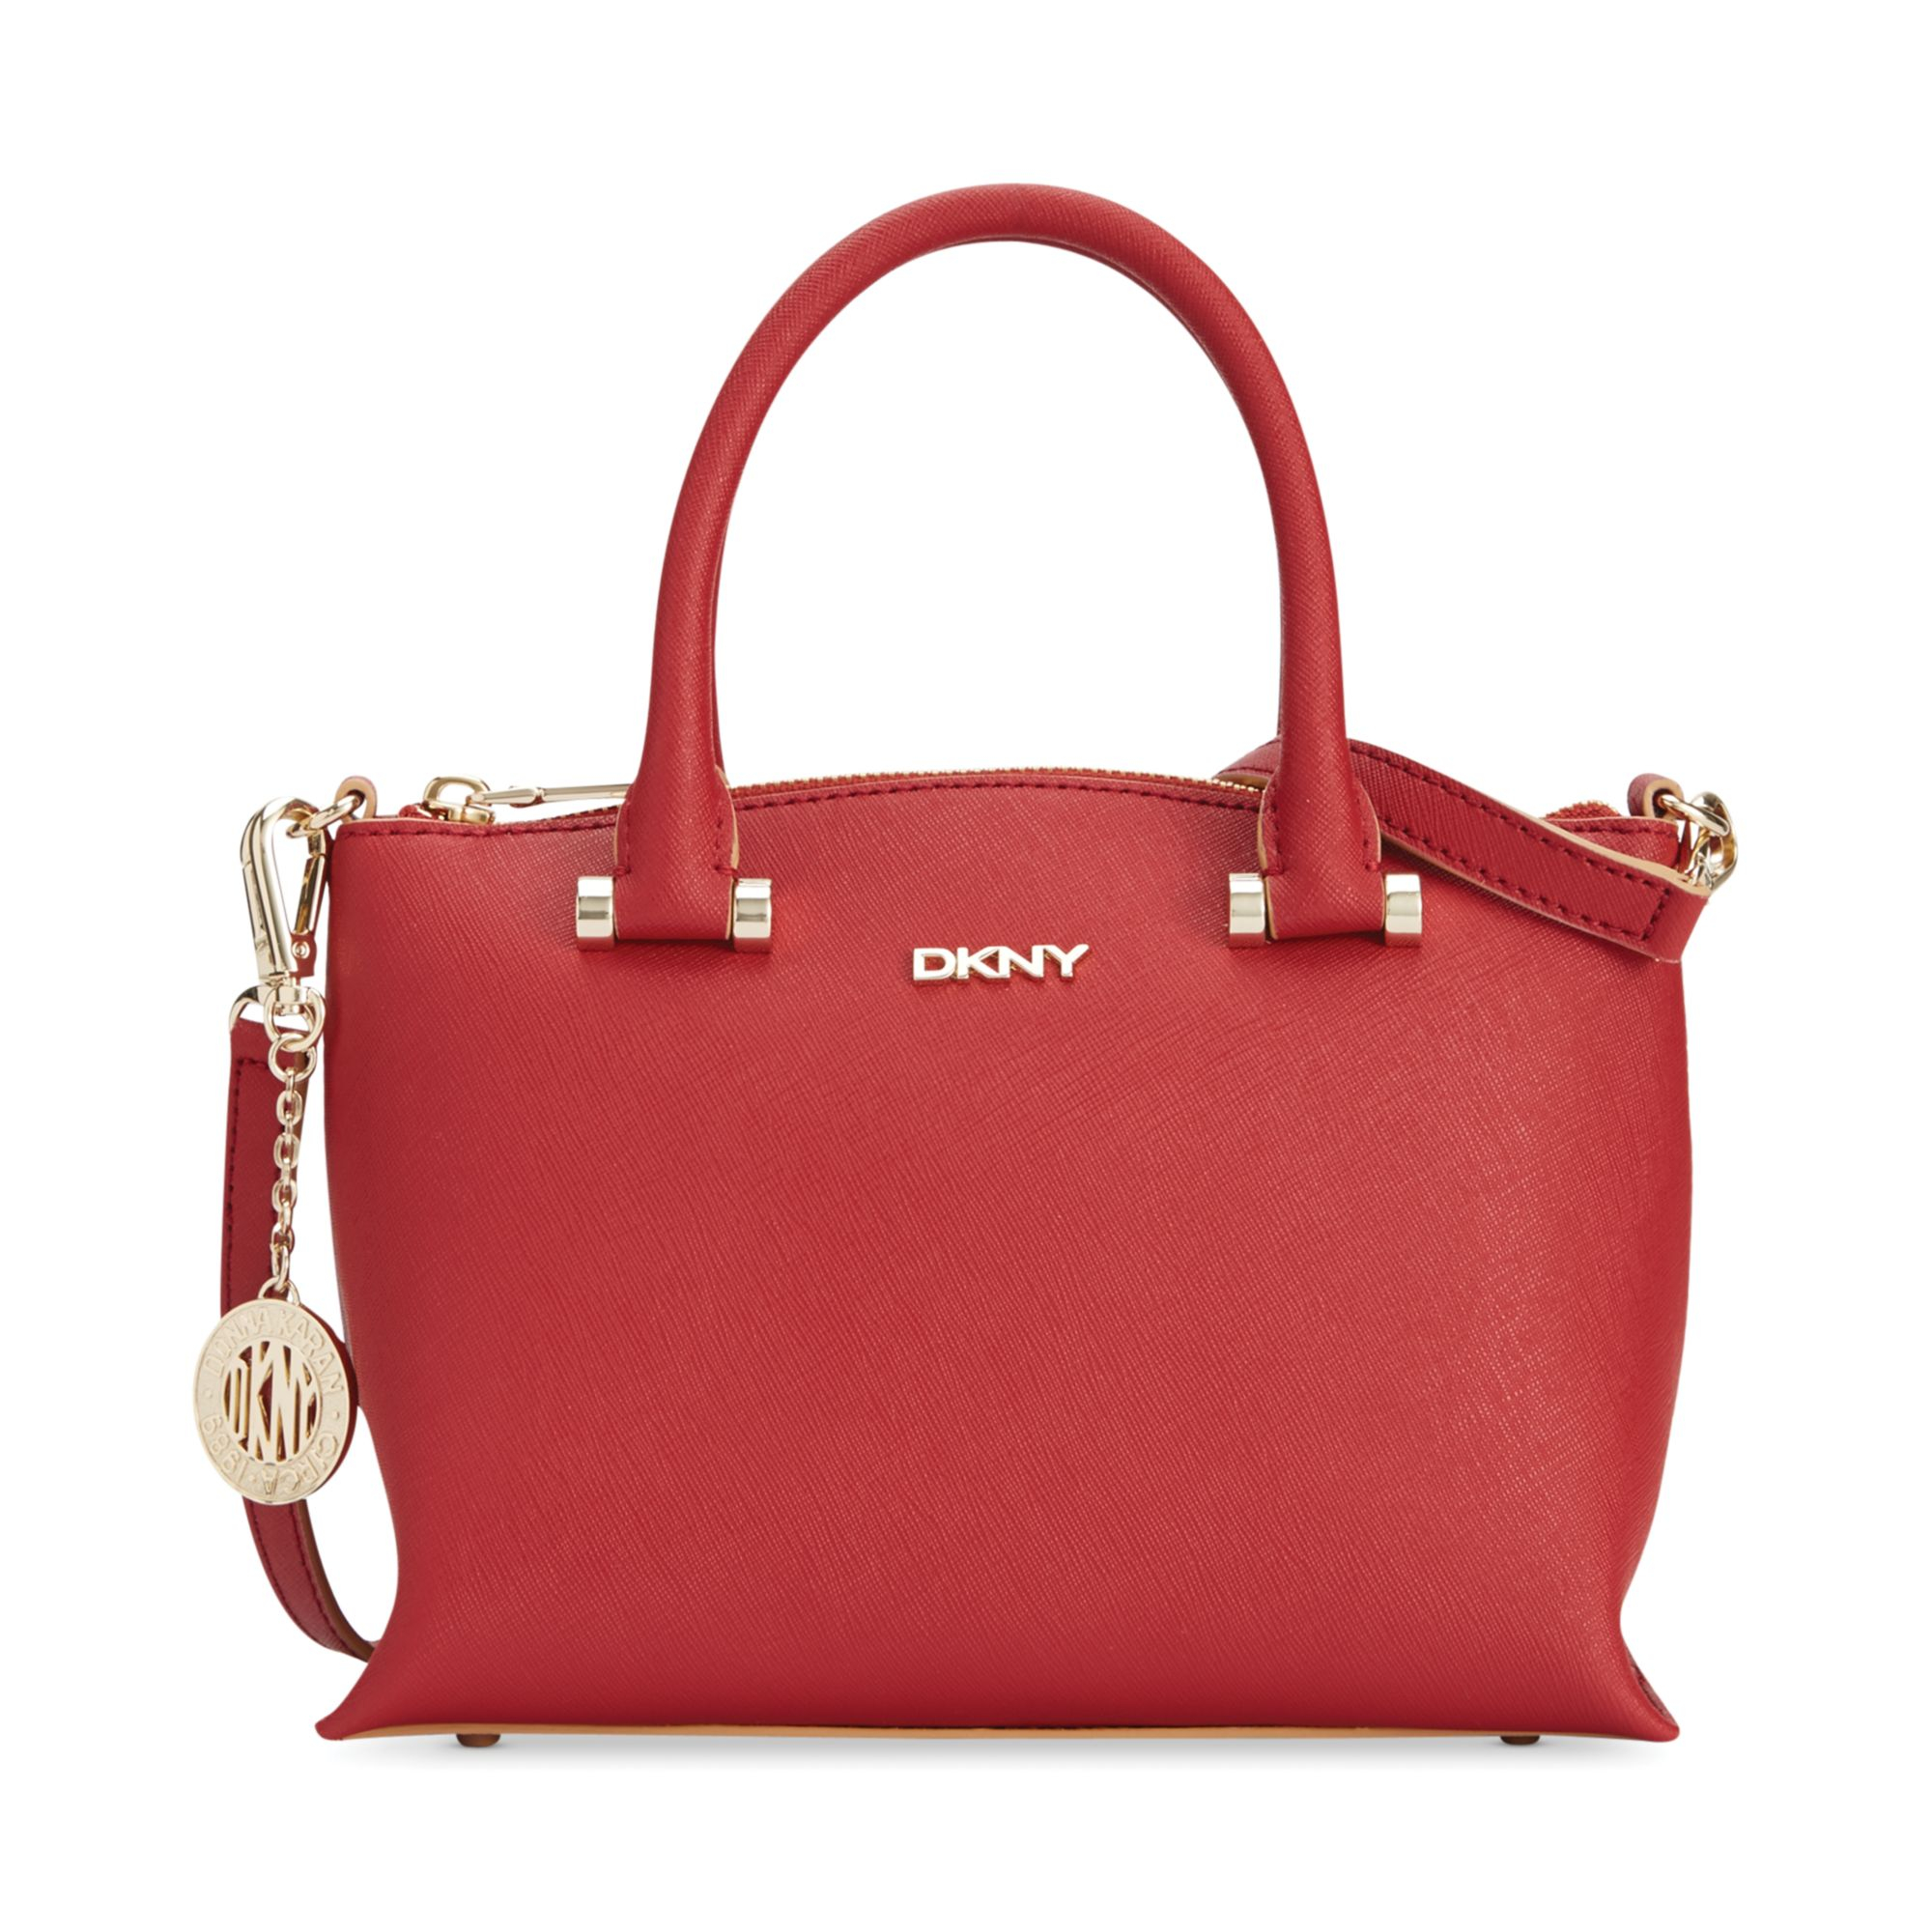 dkny bryant park saffiano top zip round crossbody in red brick lyst. Black Bedroom Furniture Sets. Home Design Ideas